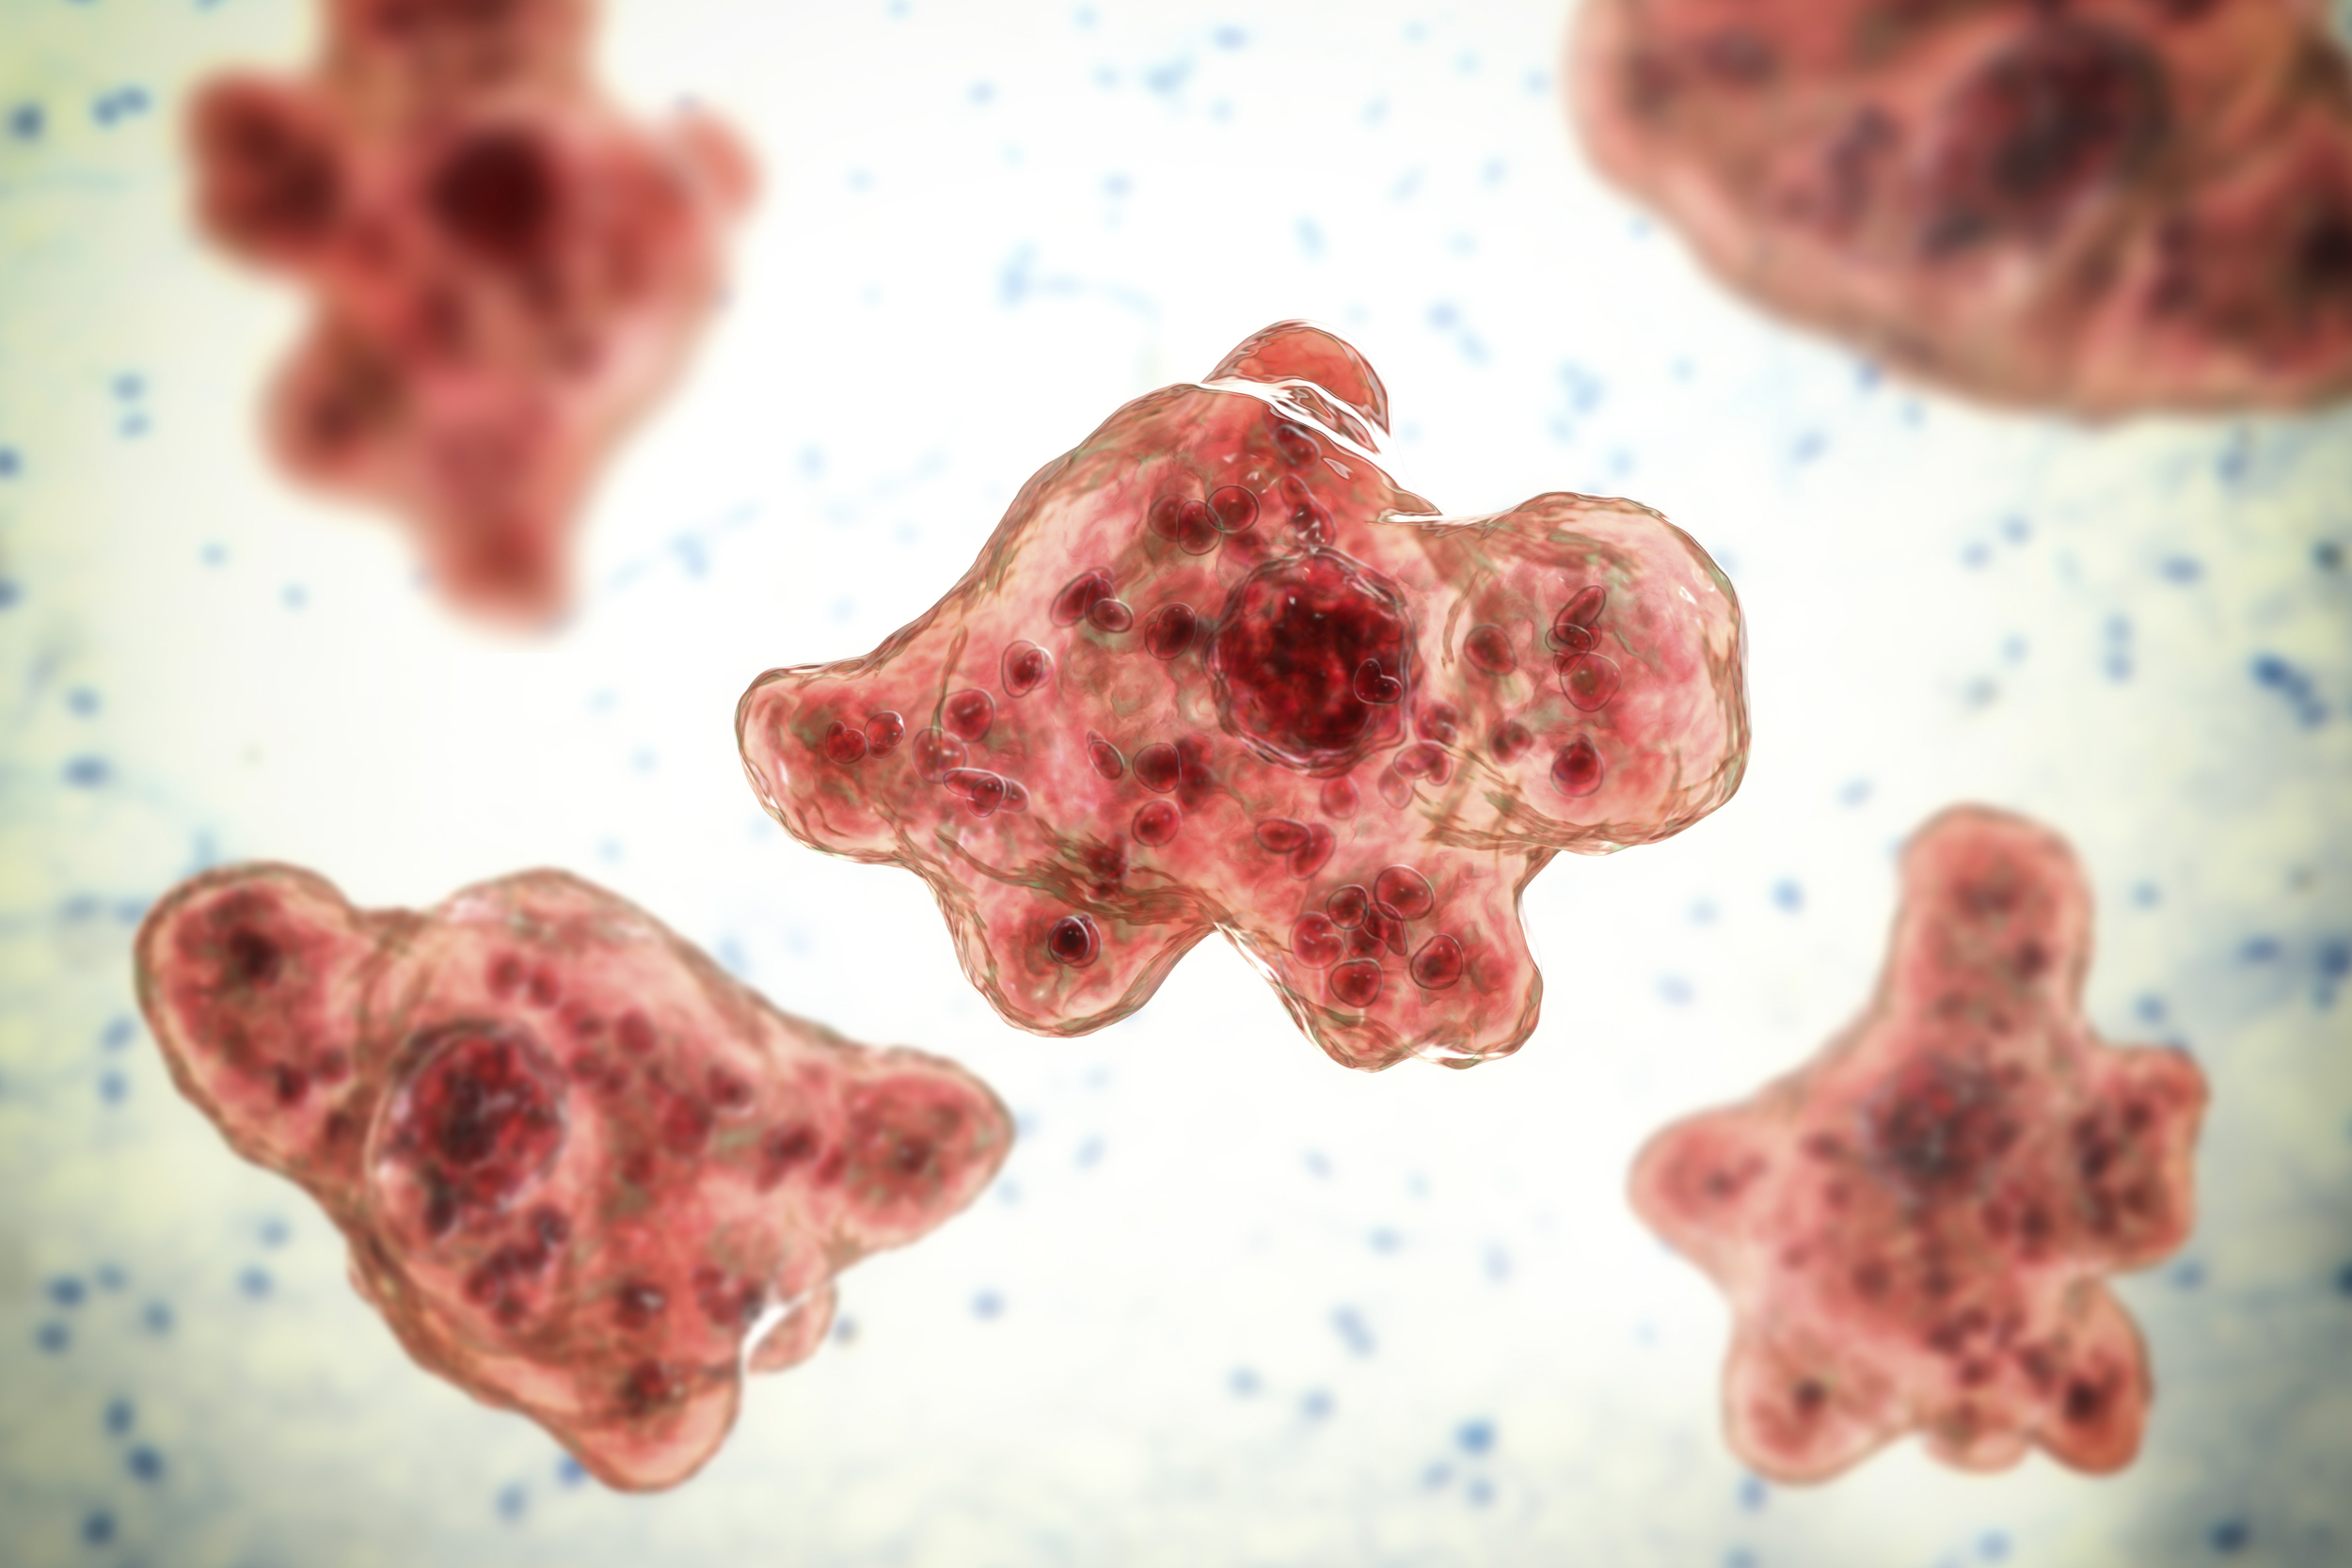 7-year-old boy dies from brain-eating amoeba in California, family says